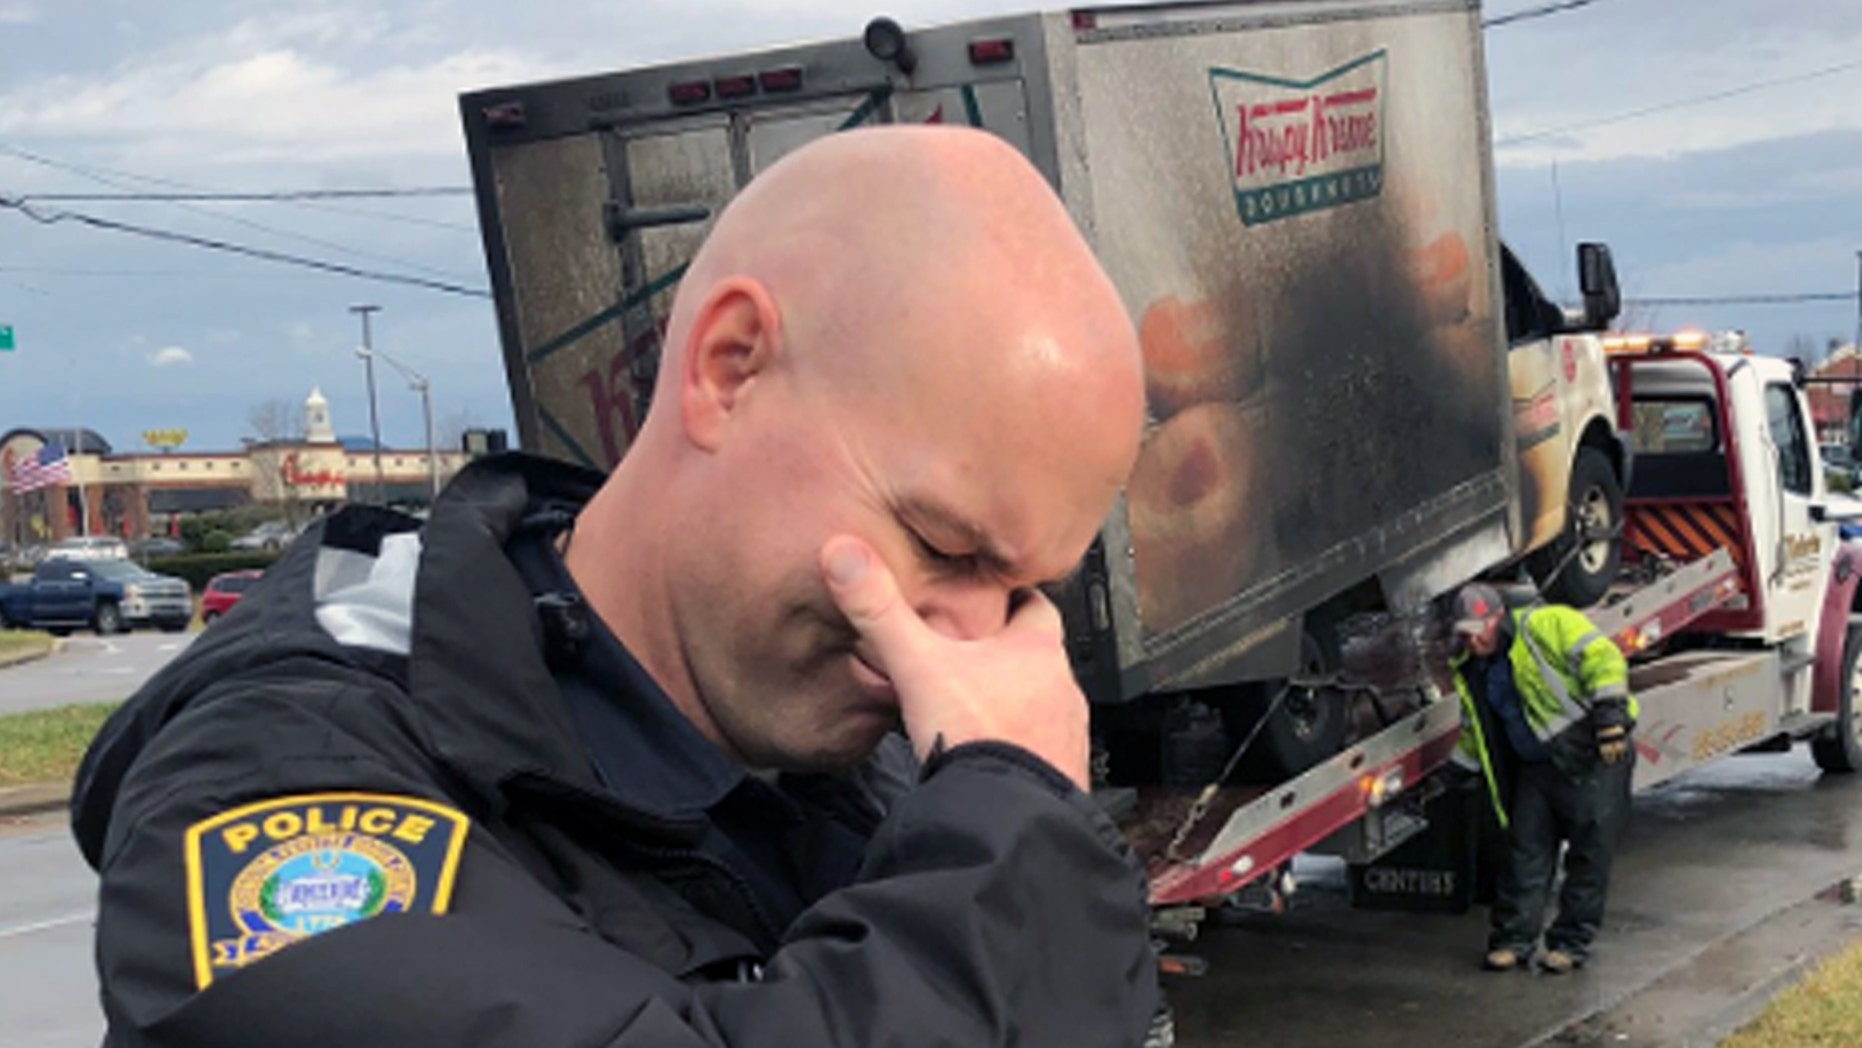 Law enforcement around the world hilariously mourn doughnuts lost during fire